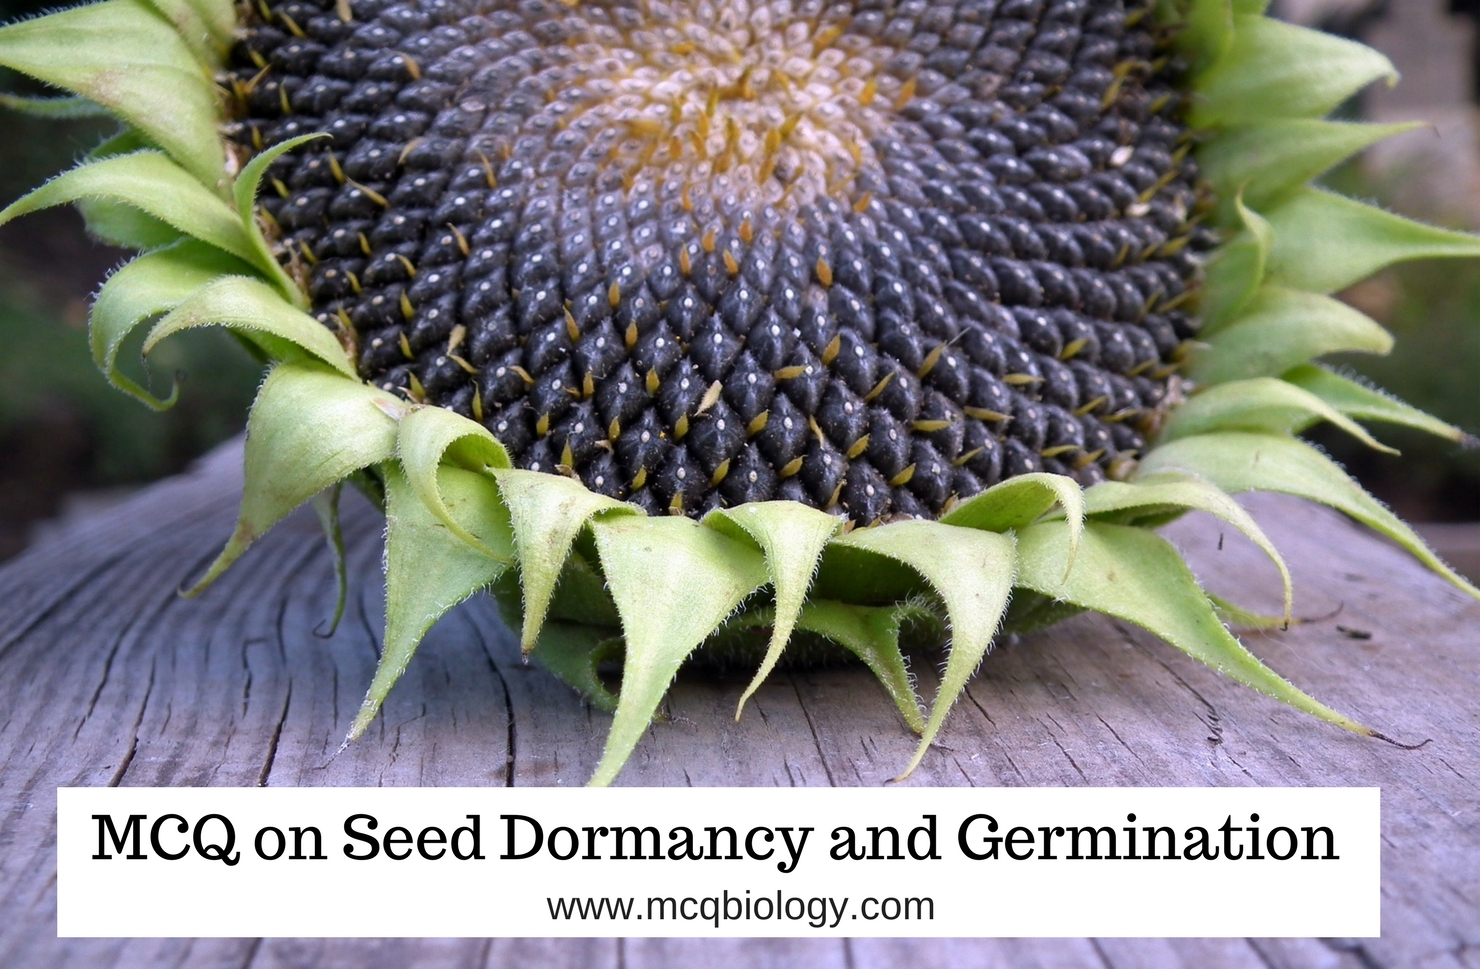 MCQ on Dormancy and Seed germination